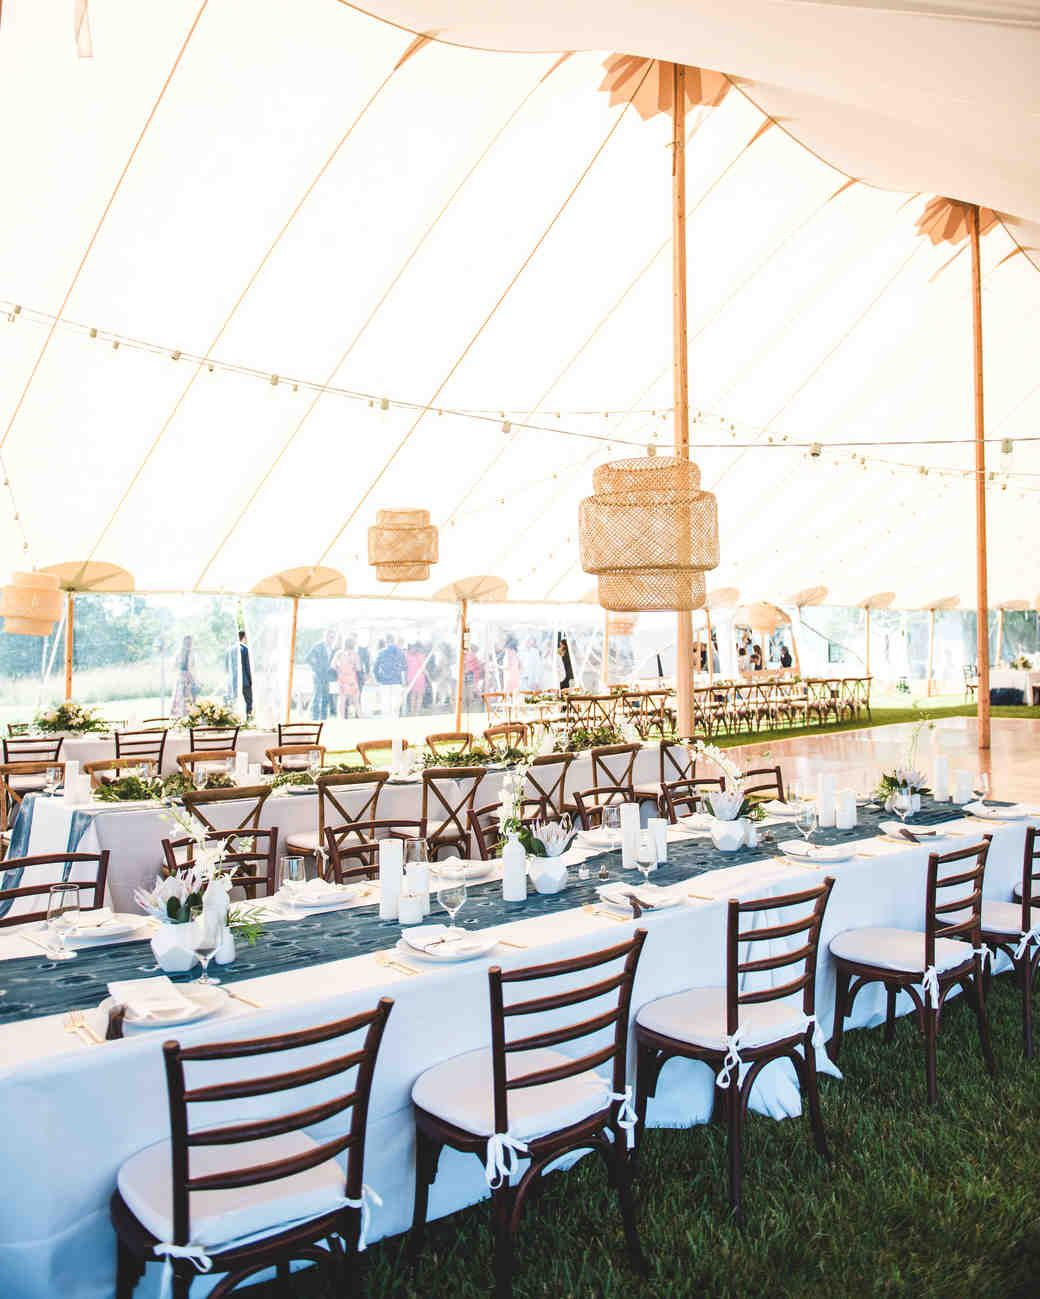 katie simon wedding tent | Wedding Scrapbook | Pinterest | Weddings ...